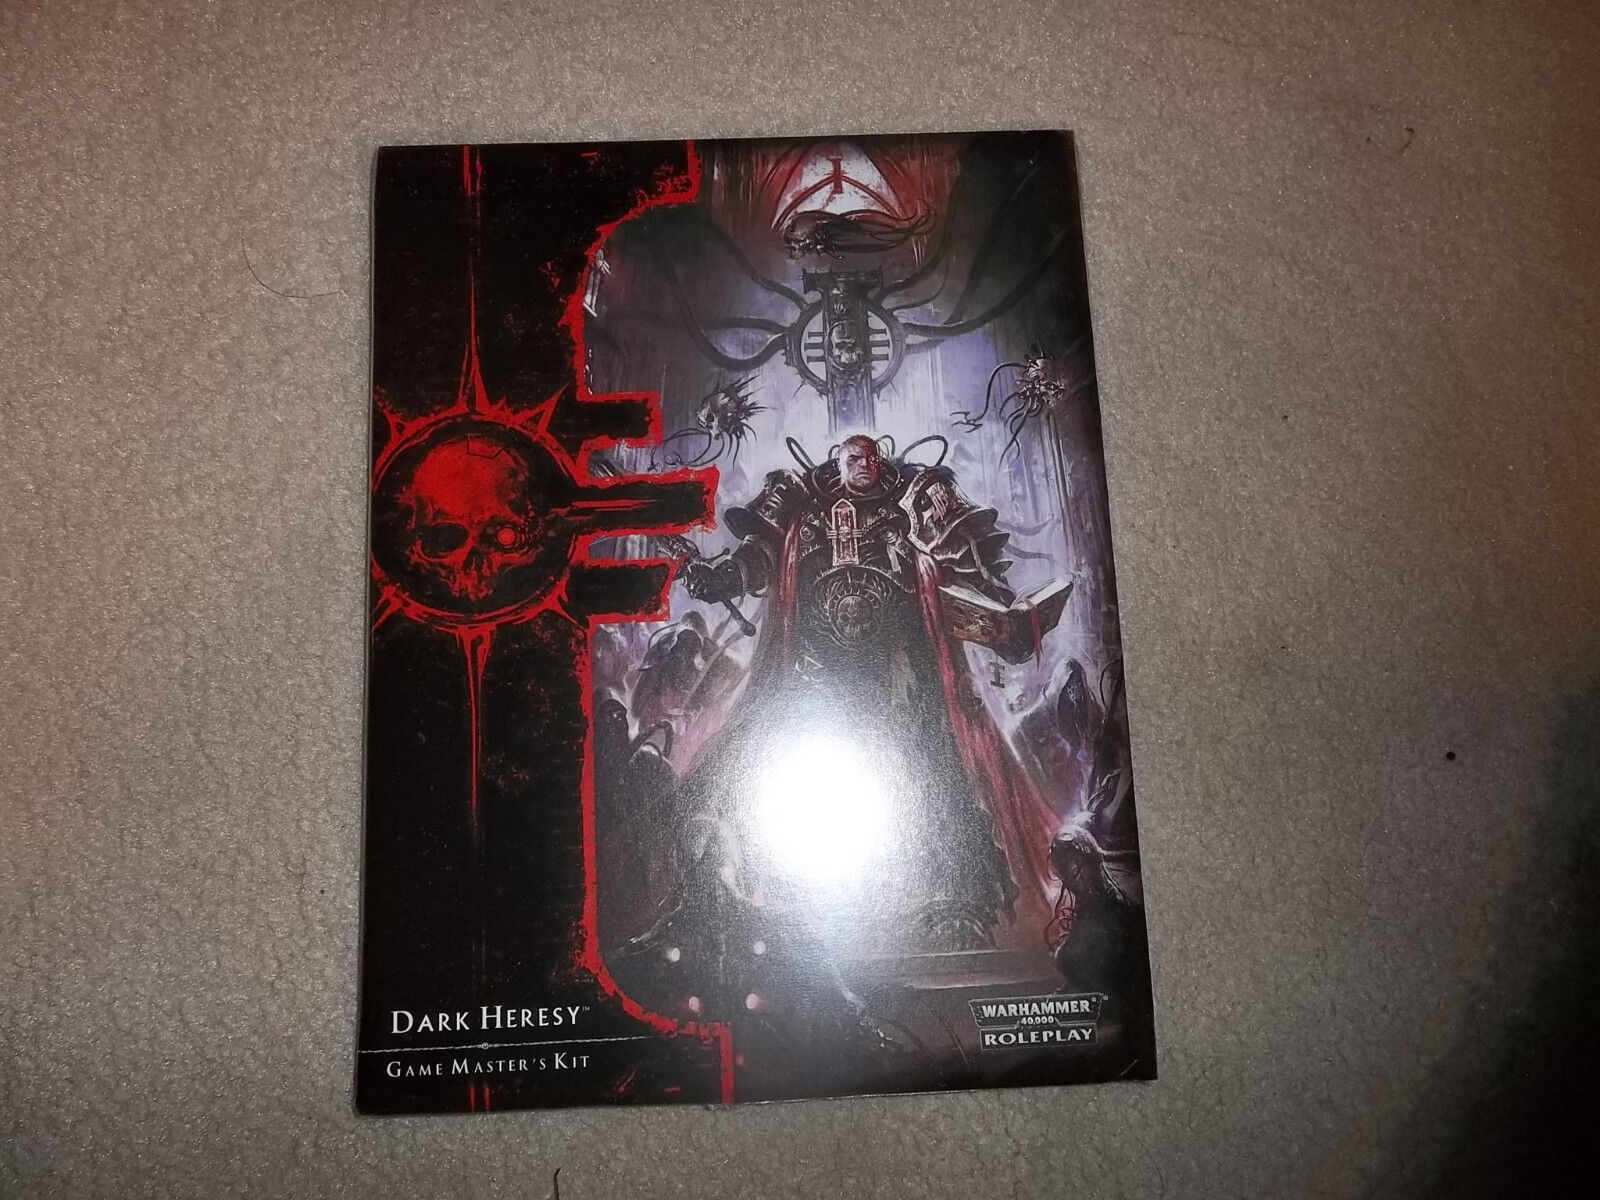 Warhammer 40K RPG Dark Heresy 2nd Ed Game Master's Kit SW